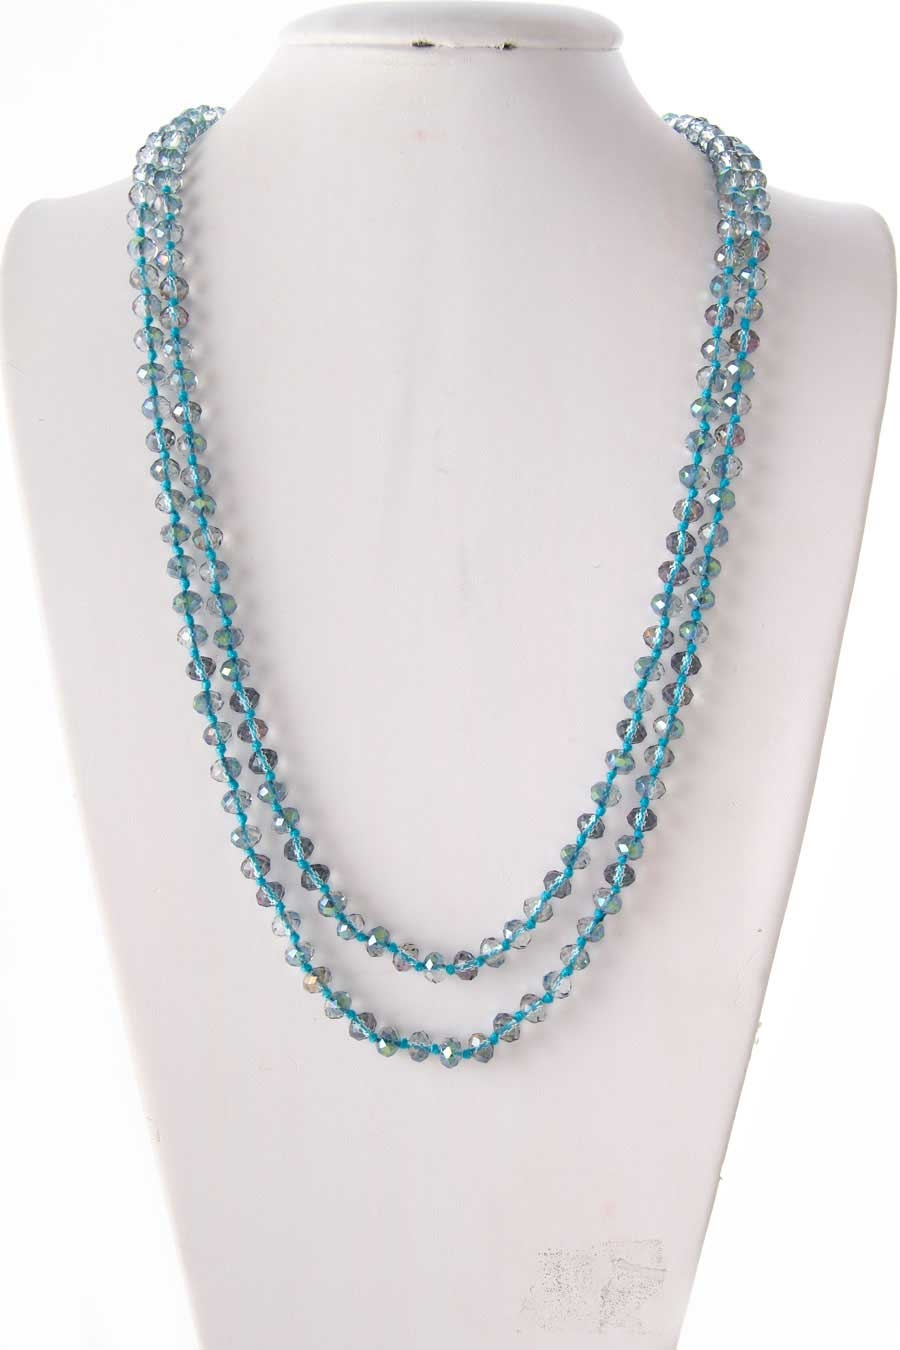 GLASS BEADS KNOTTED NECKLACE - orangeshine.com